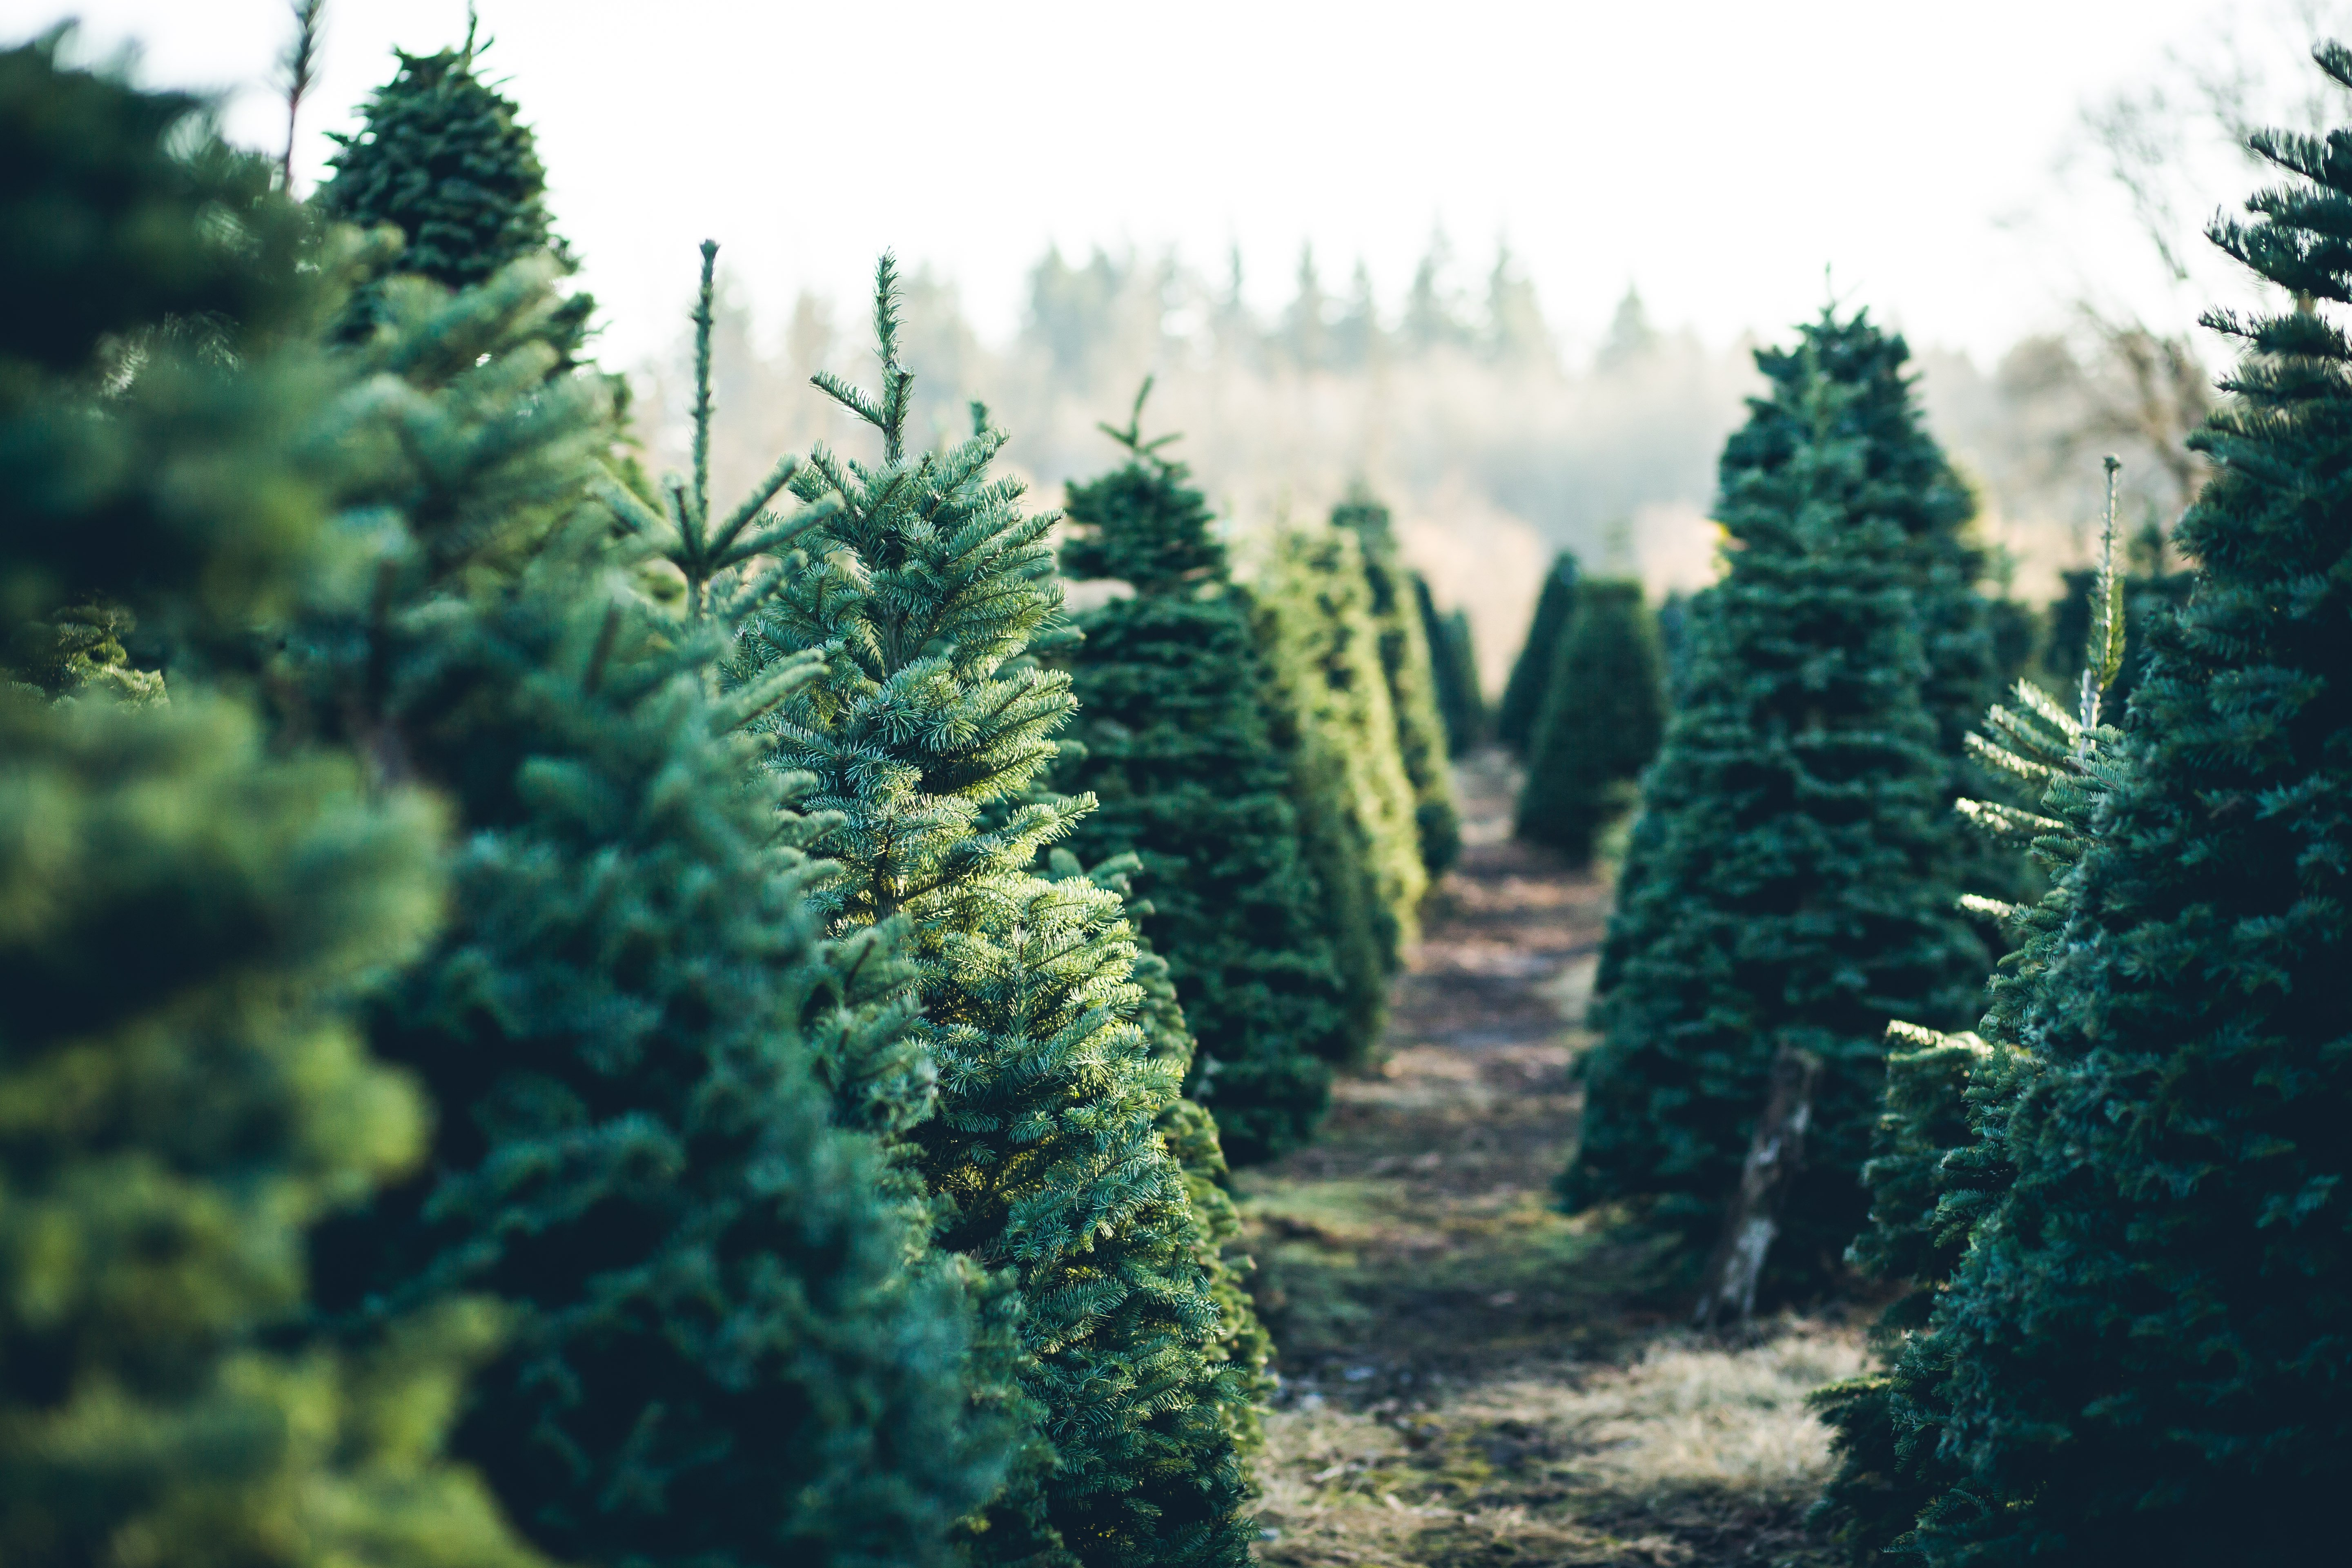 Trees in Rows at a Christmas Tree Farm | Photo: Shutterstock.com